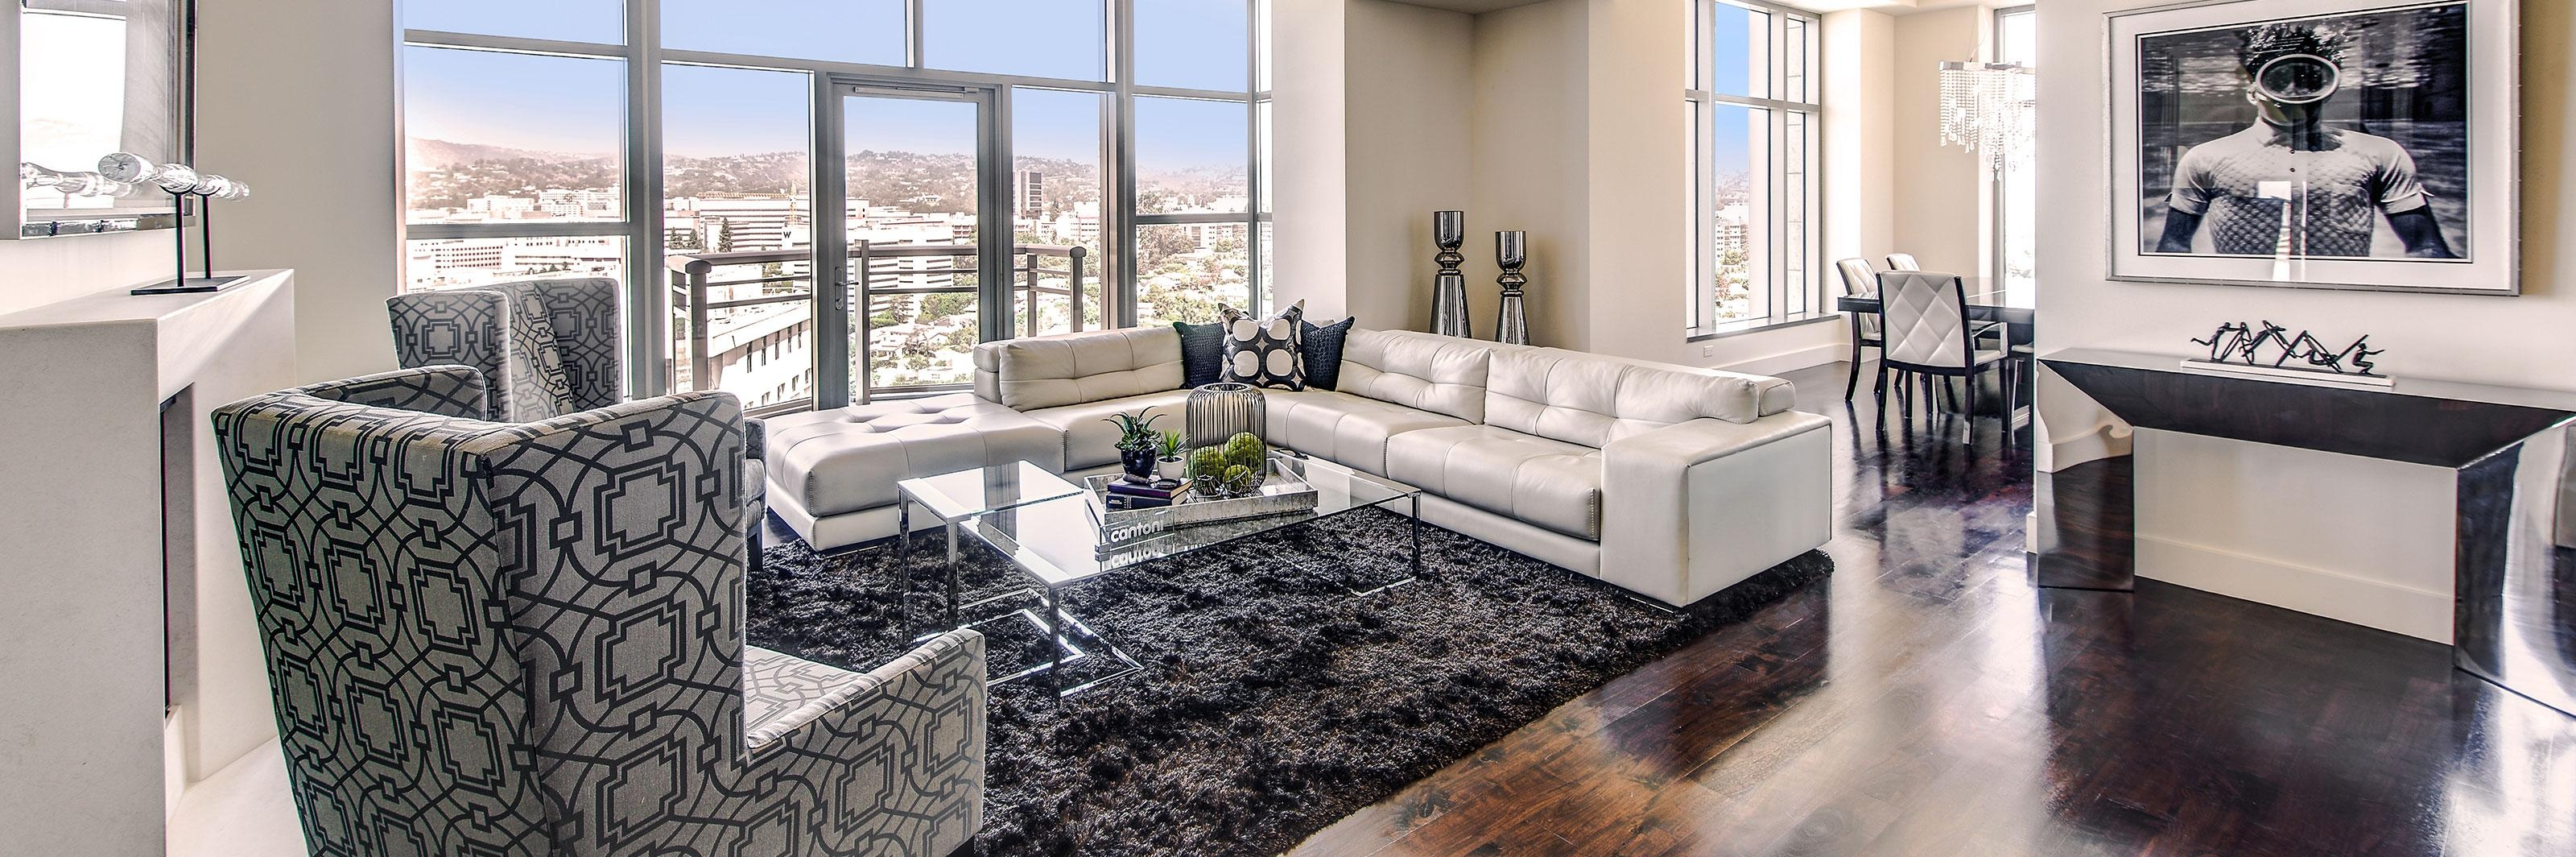 The Cantoni Home At The Carlyle Residences | Cantoni Los Angeles Intended For Cantoni Sofas (View 12 of 20)